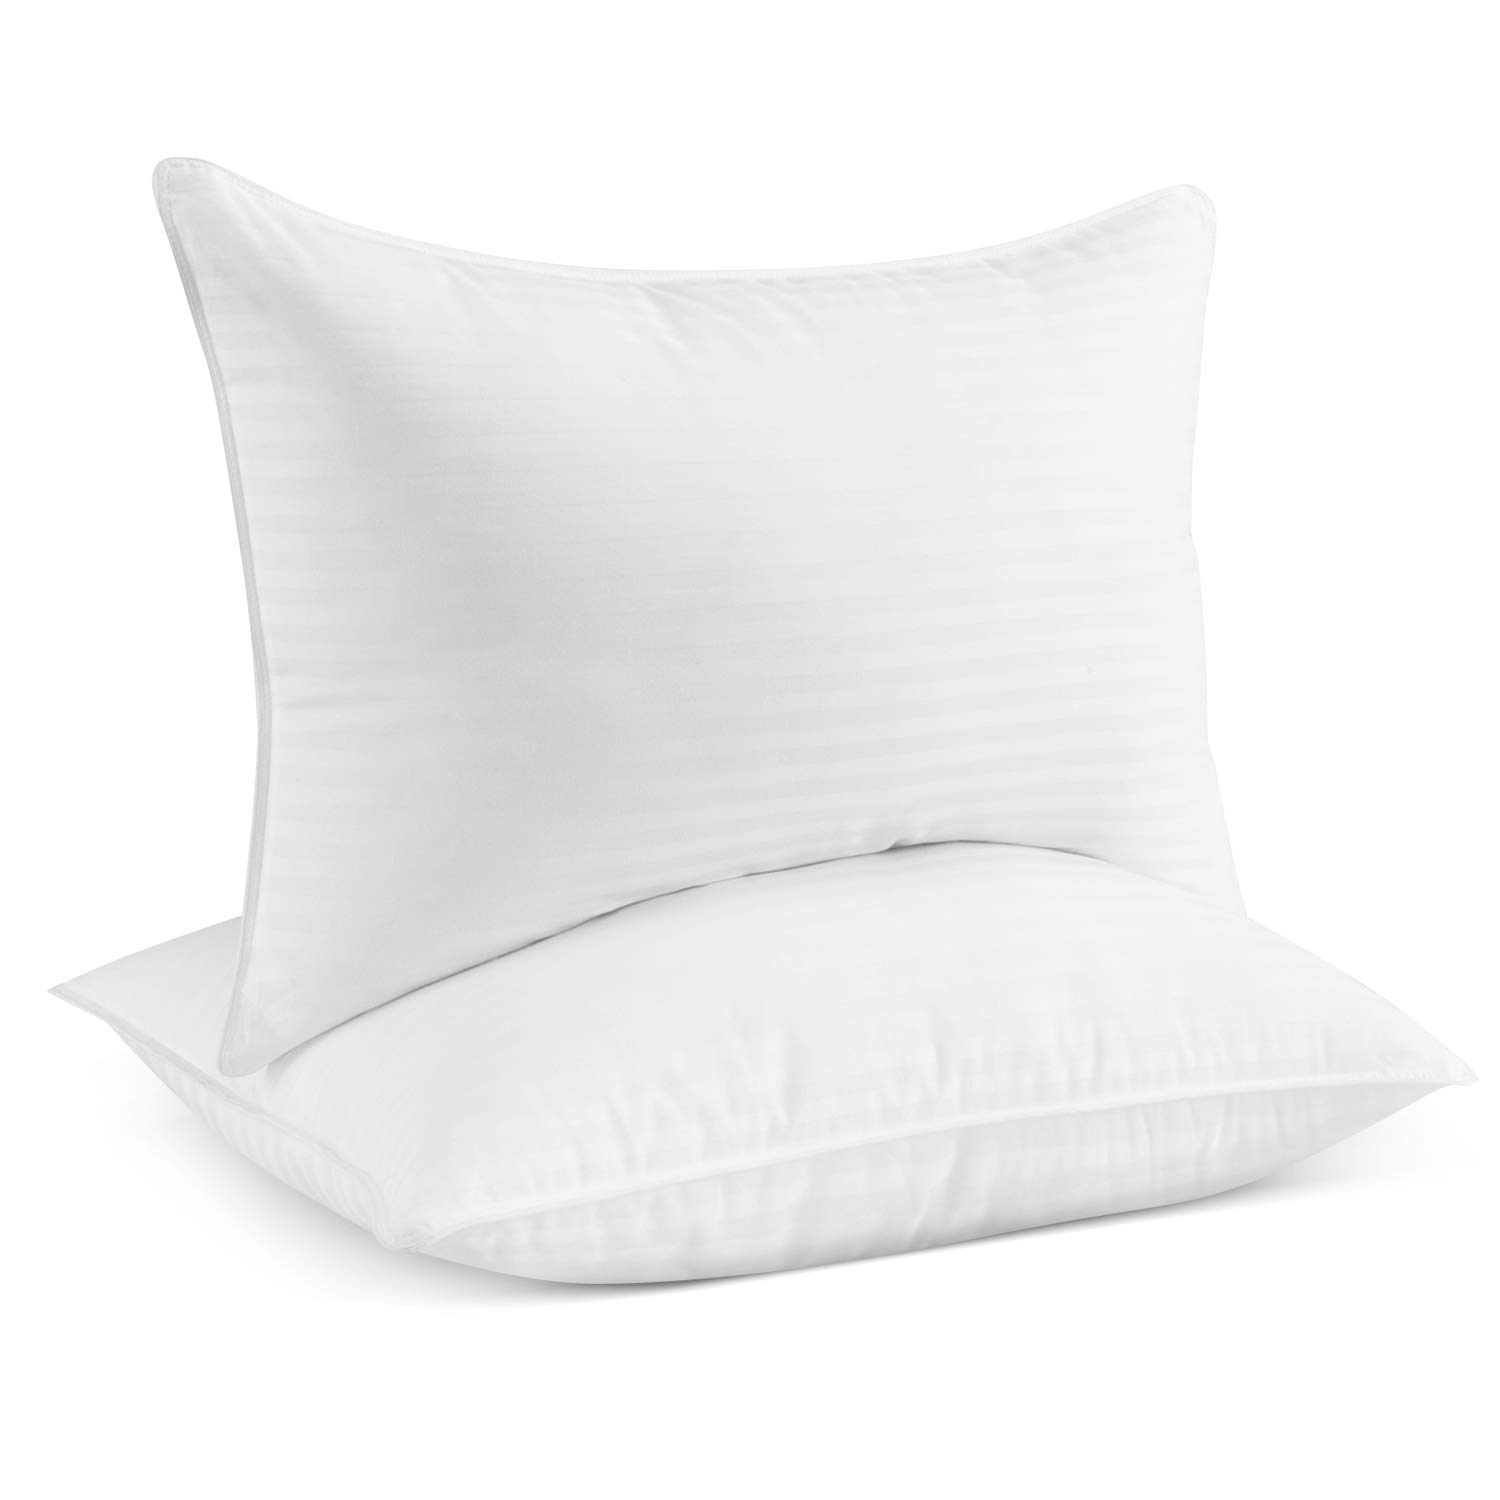 Review Of The 10 Best Hypoallergenic Pillows Of 2019